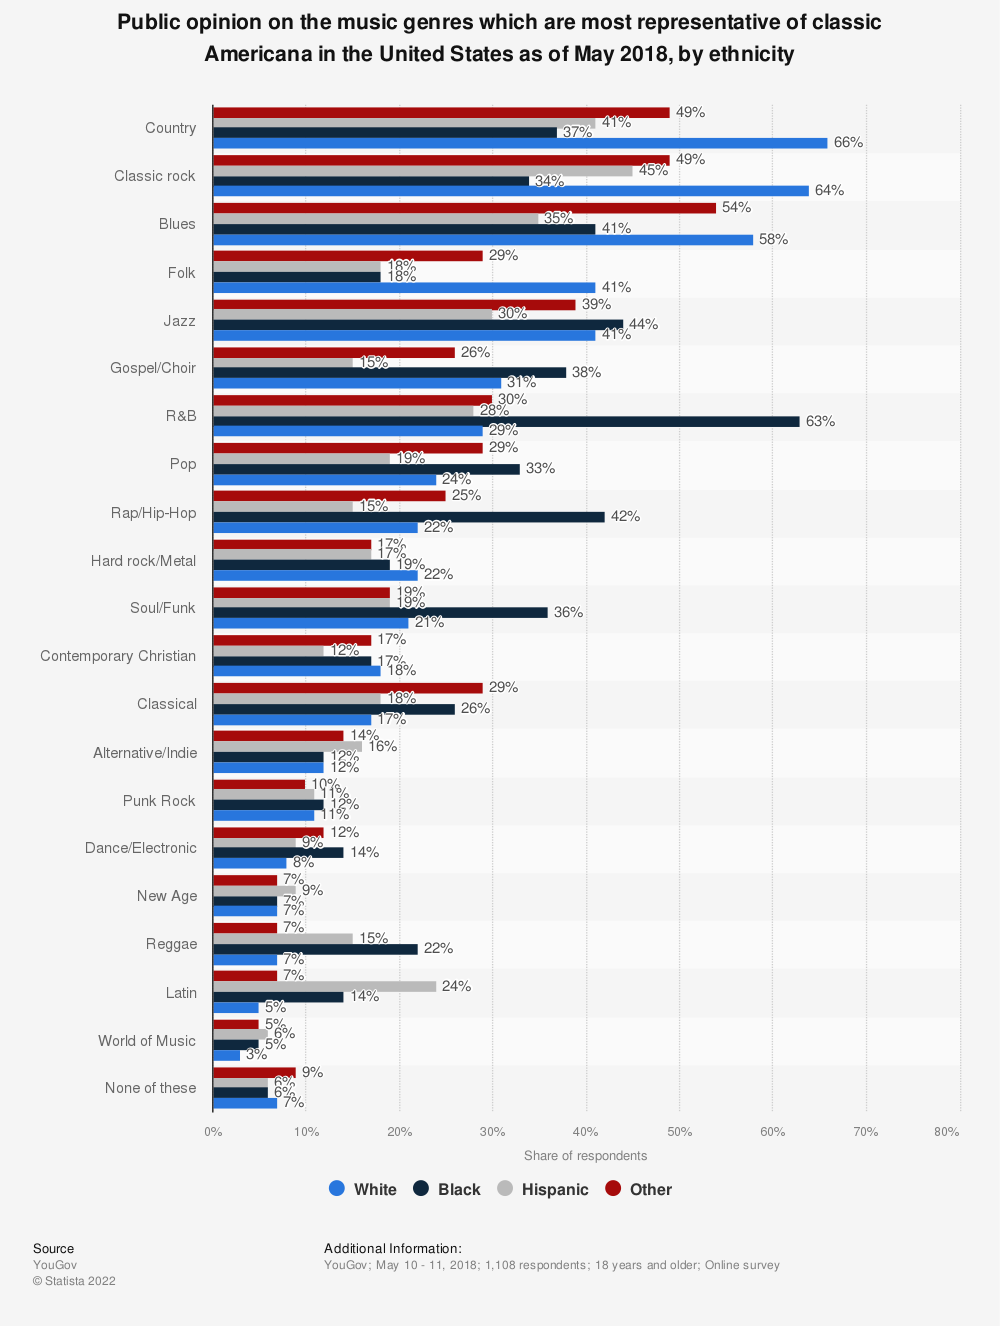 Statistic: Public opinion on the music genres which are most representative of classic Americana in the United States as of May 2018, by ethnicity | Statista